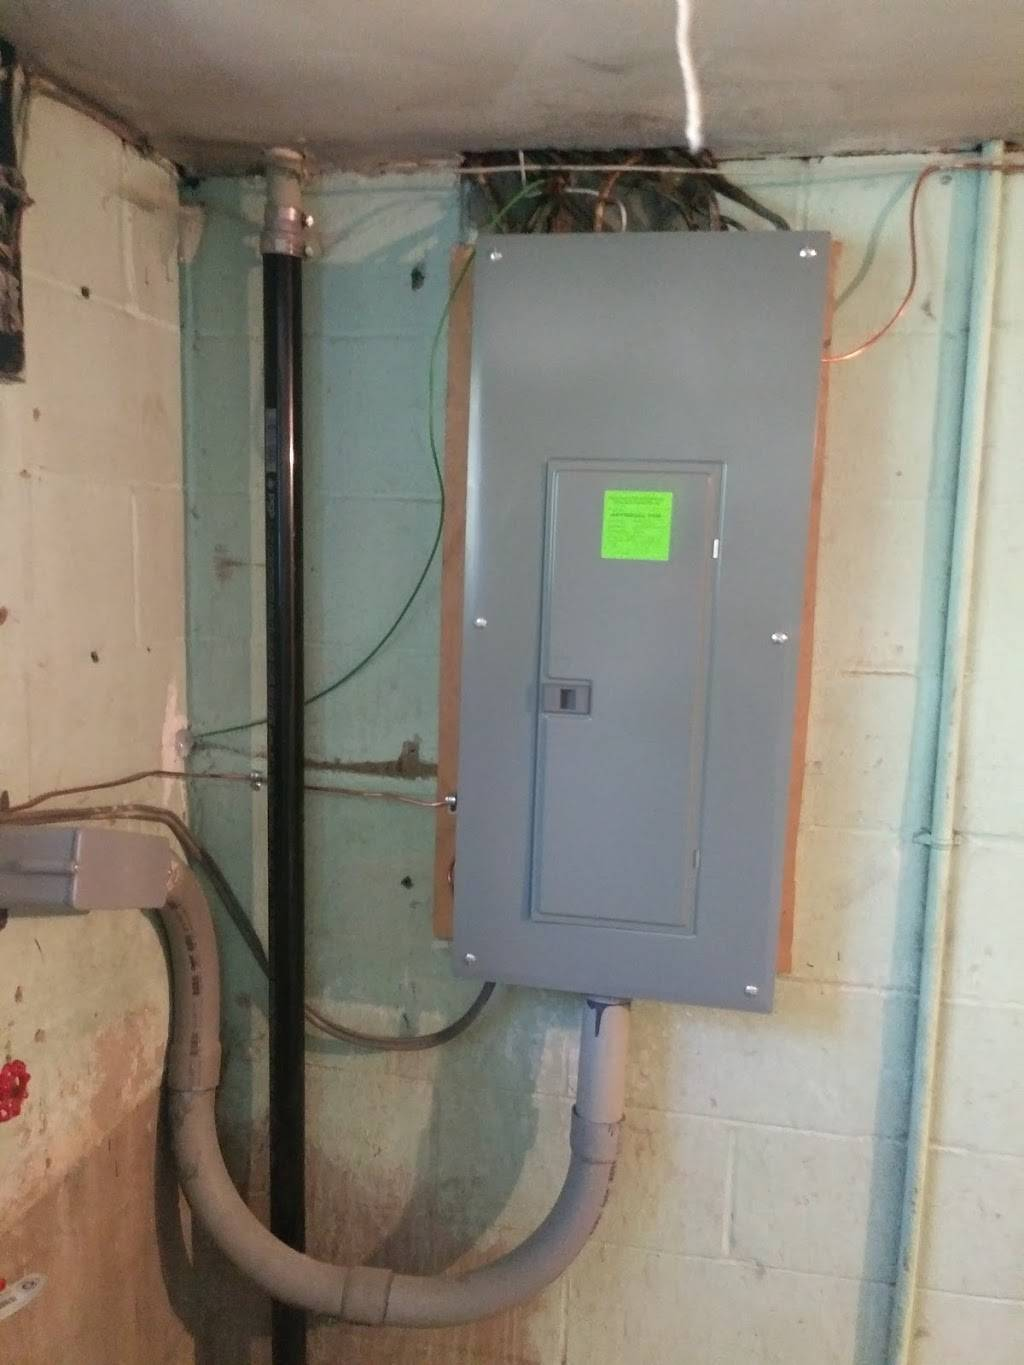 GPB Electrical Services - electrician    Photo 5 of 6   Address: 104 Meadow St, McDonald, PA 15057, USA   Phone: (724) 506-3572